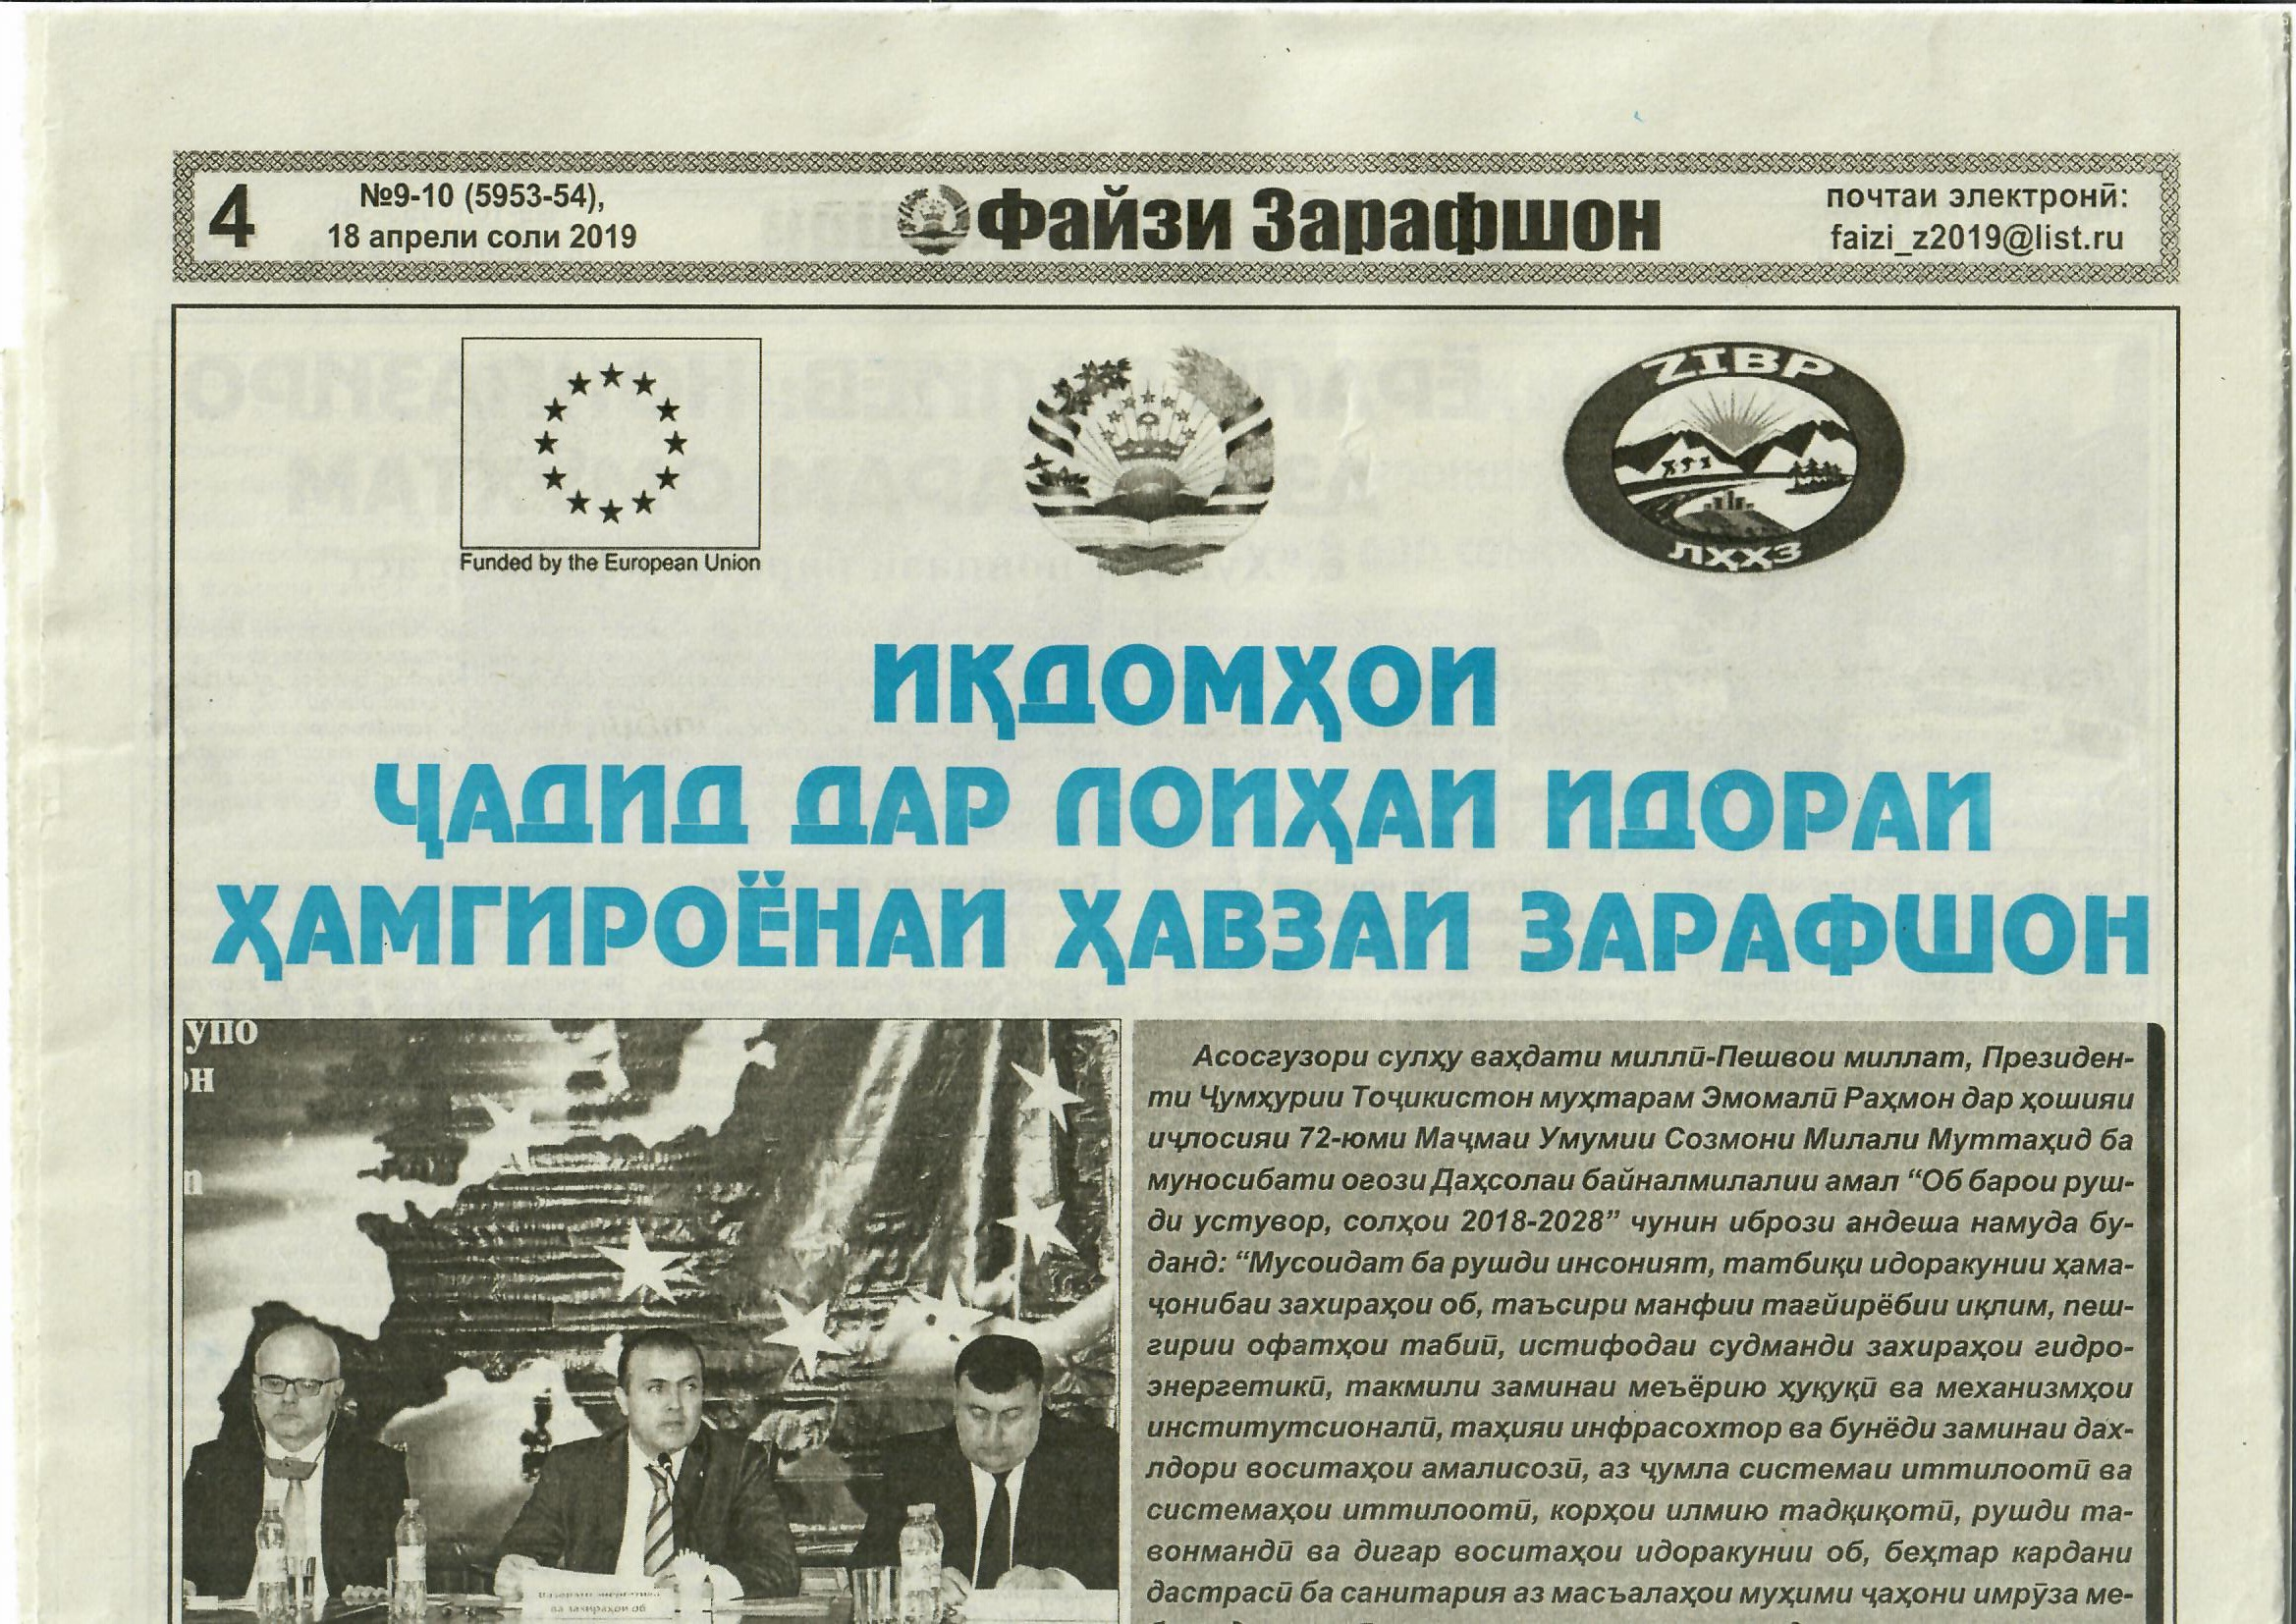 The Zarafshon Newspaper features an article about the Zarafshon Basin Dialogue